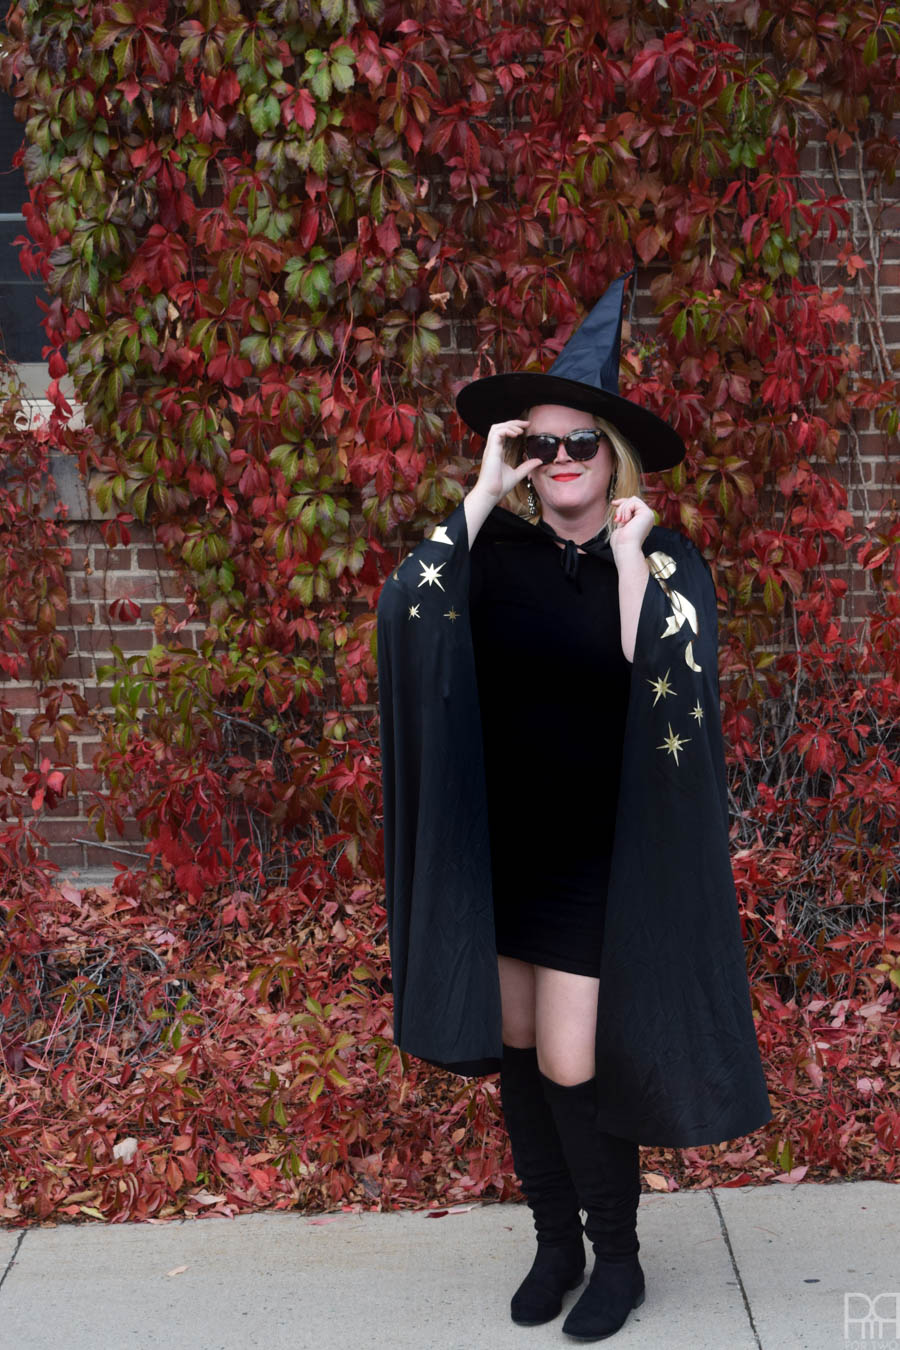 DIY with costume in front of red brick wall